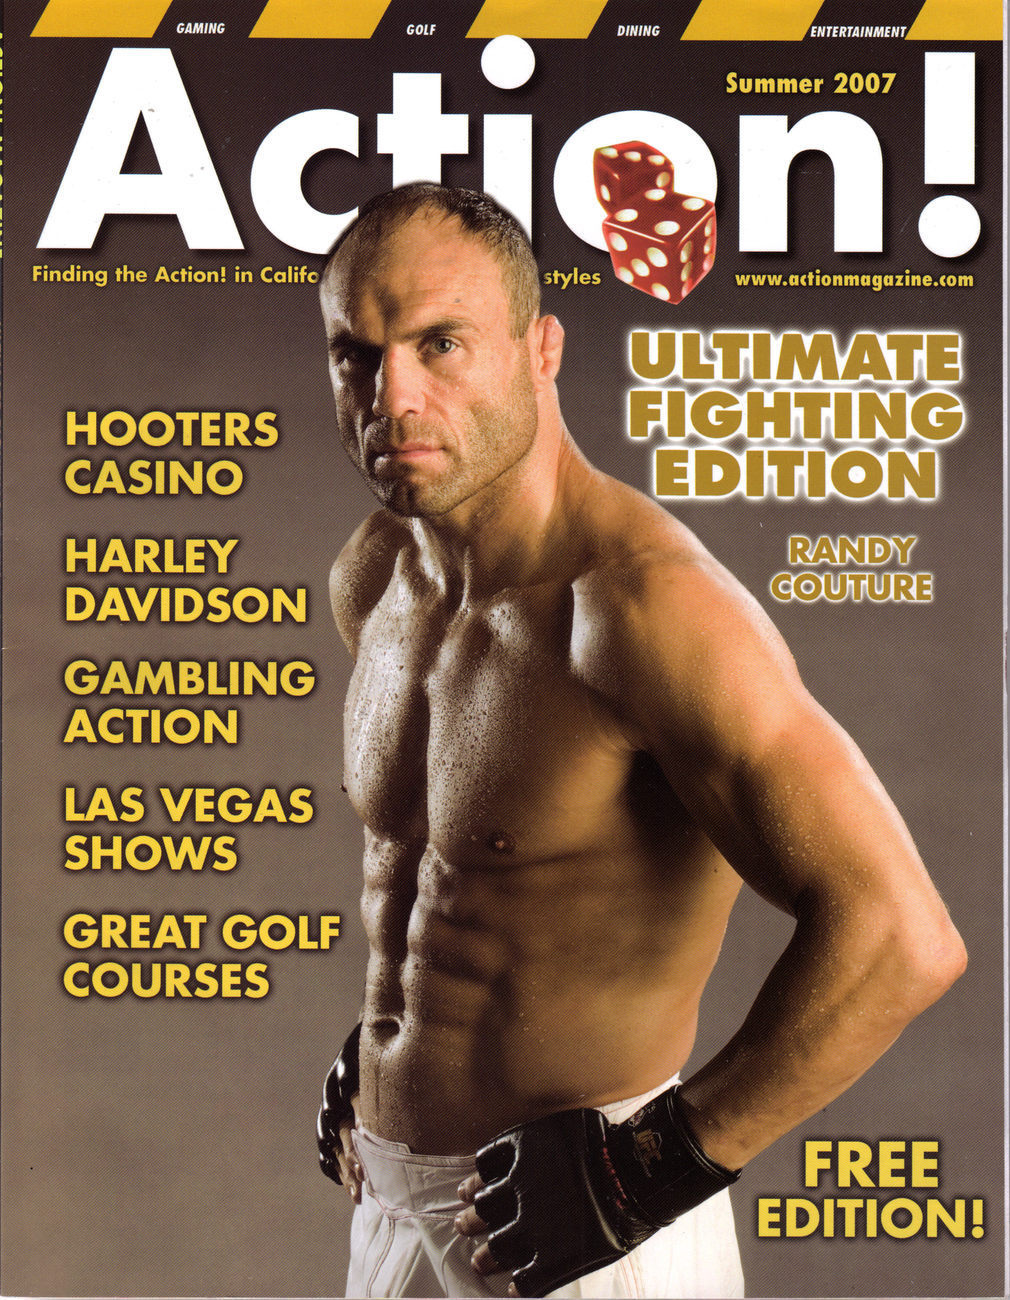 Primary image for ULTIMATE FIGHTING EDITION COUTURE DANA WHITE in ACTION 2007